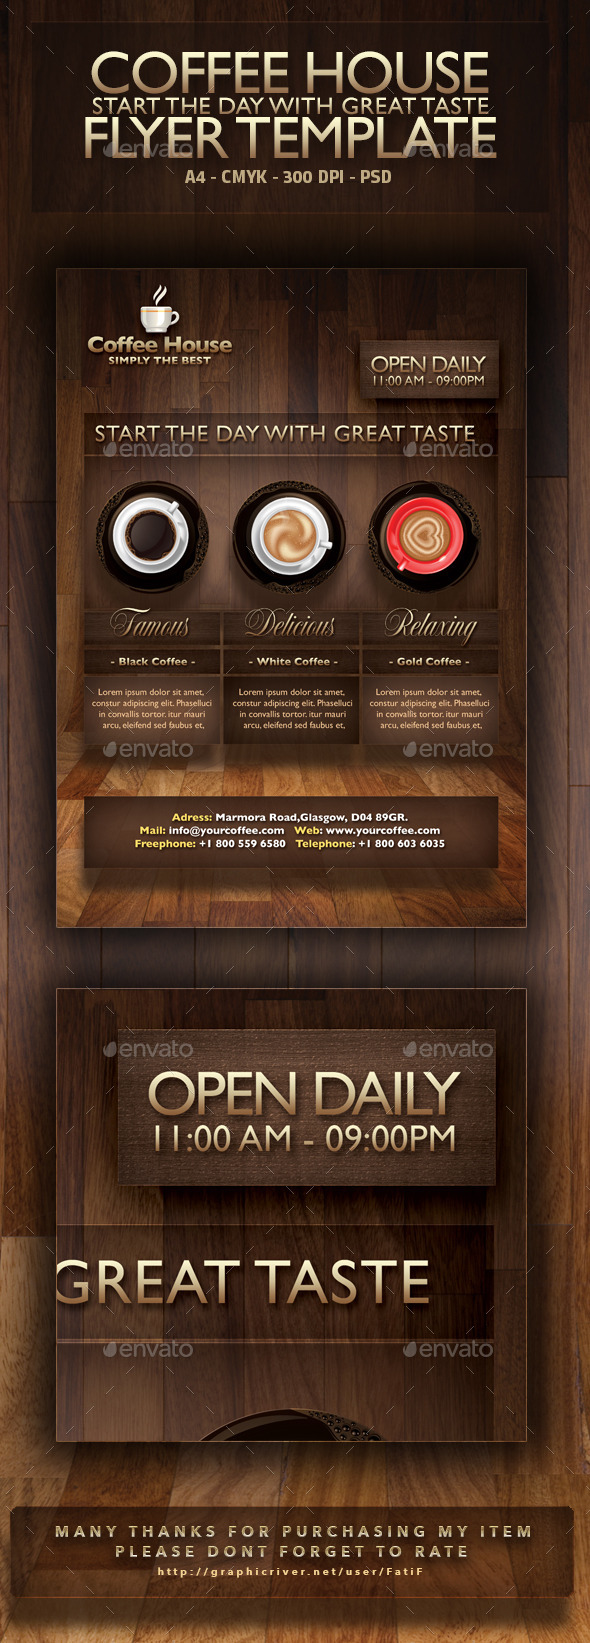 Coffee House Flyer Template - Restaurant Flyers